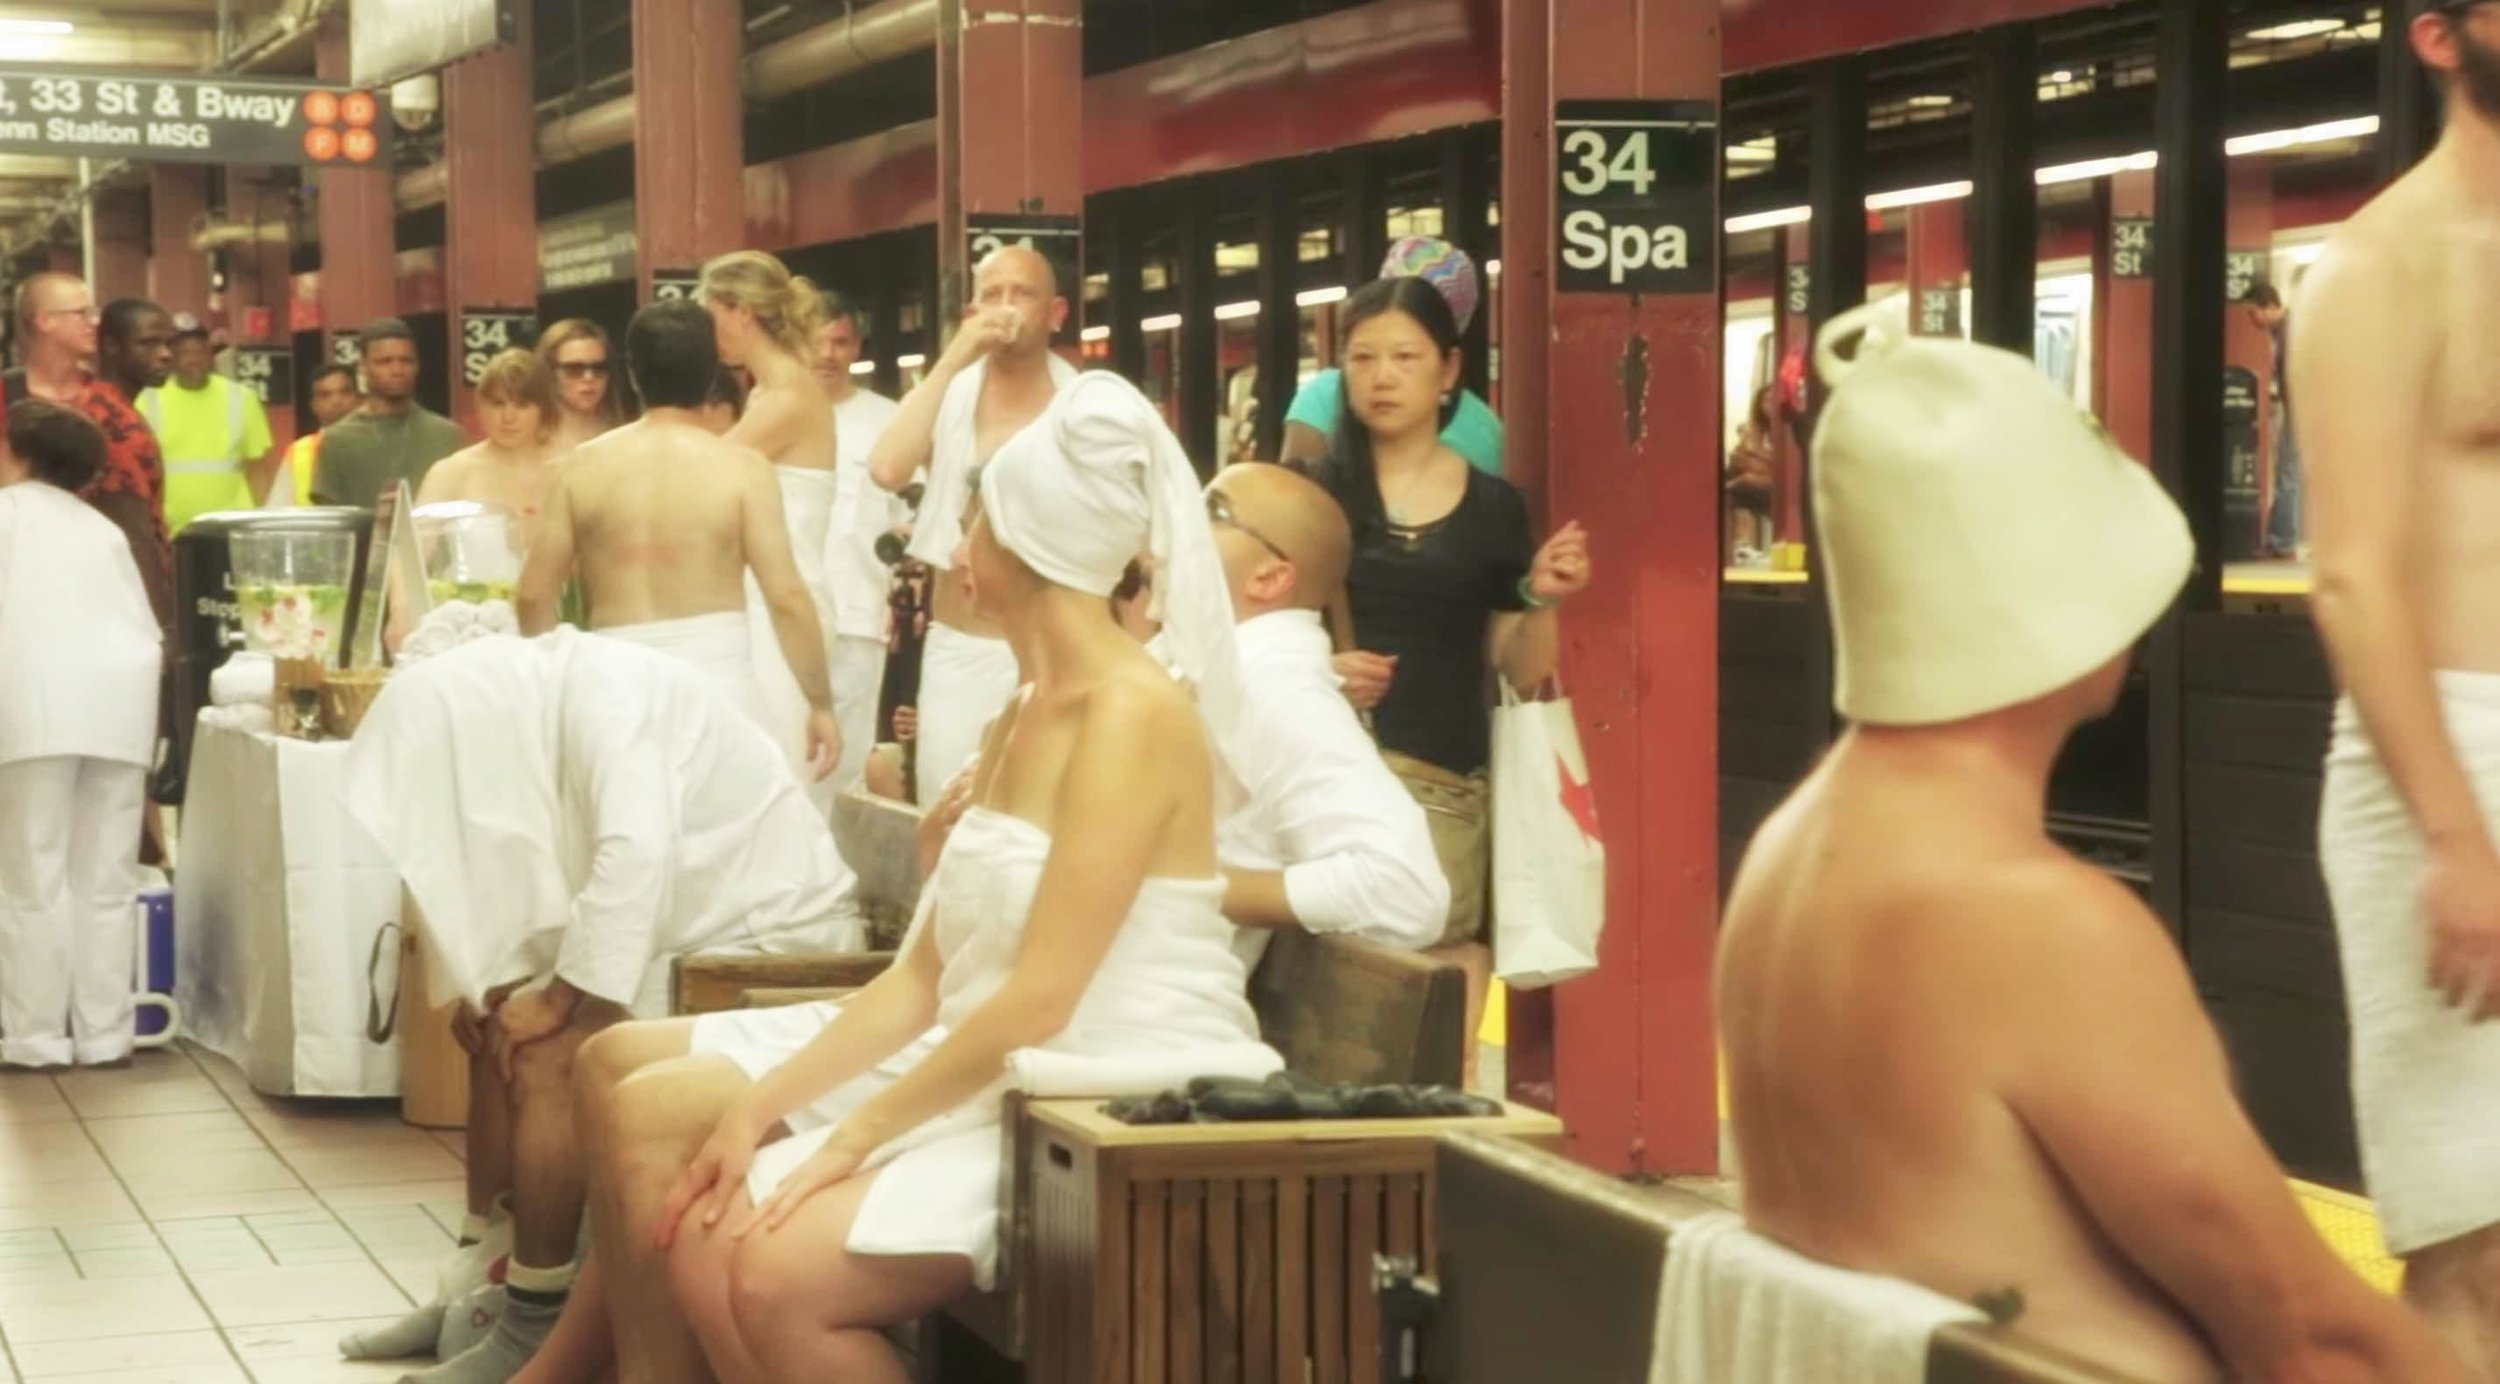 34 Street Spa – A fun way to enjoy the 95ºF / 35ºC temperature in the subway station when it's summer time